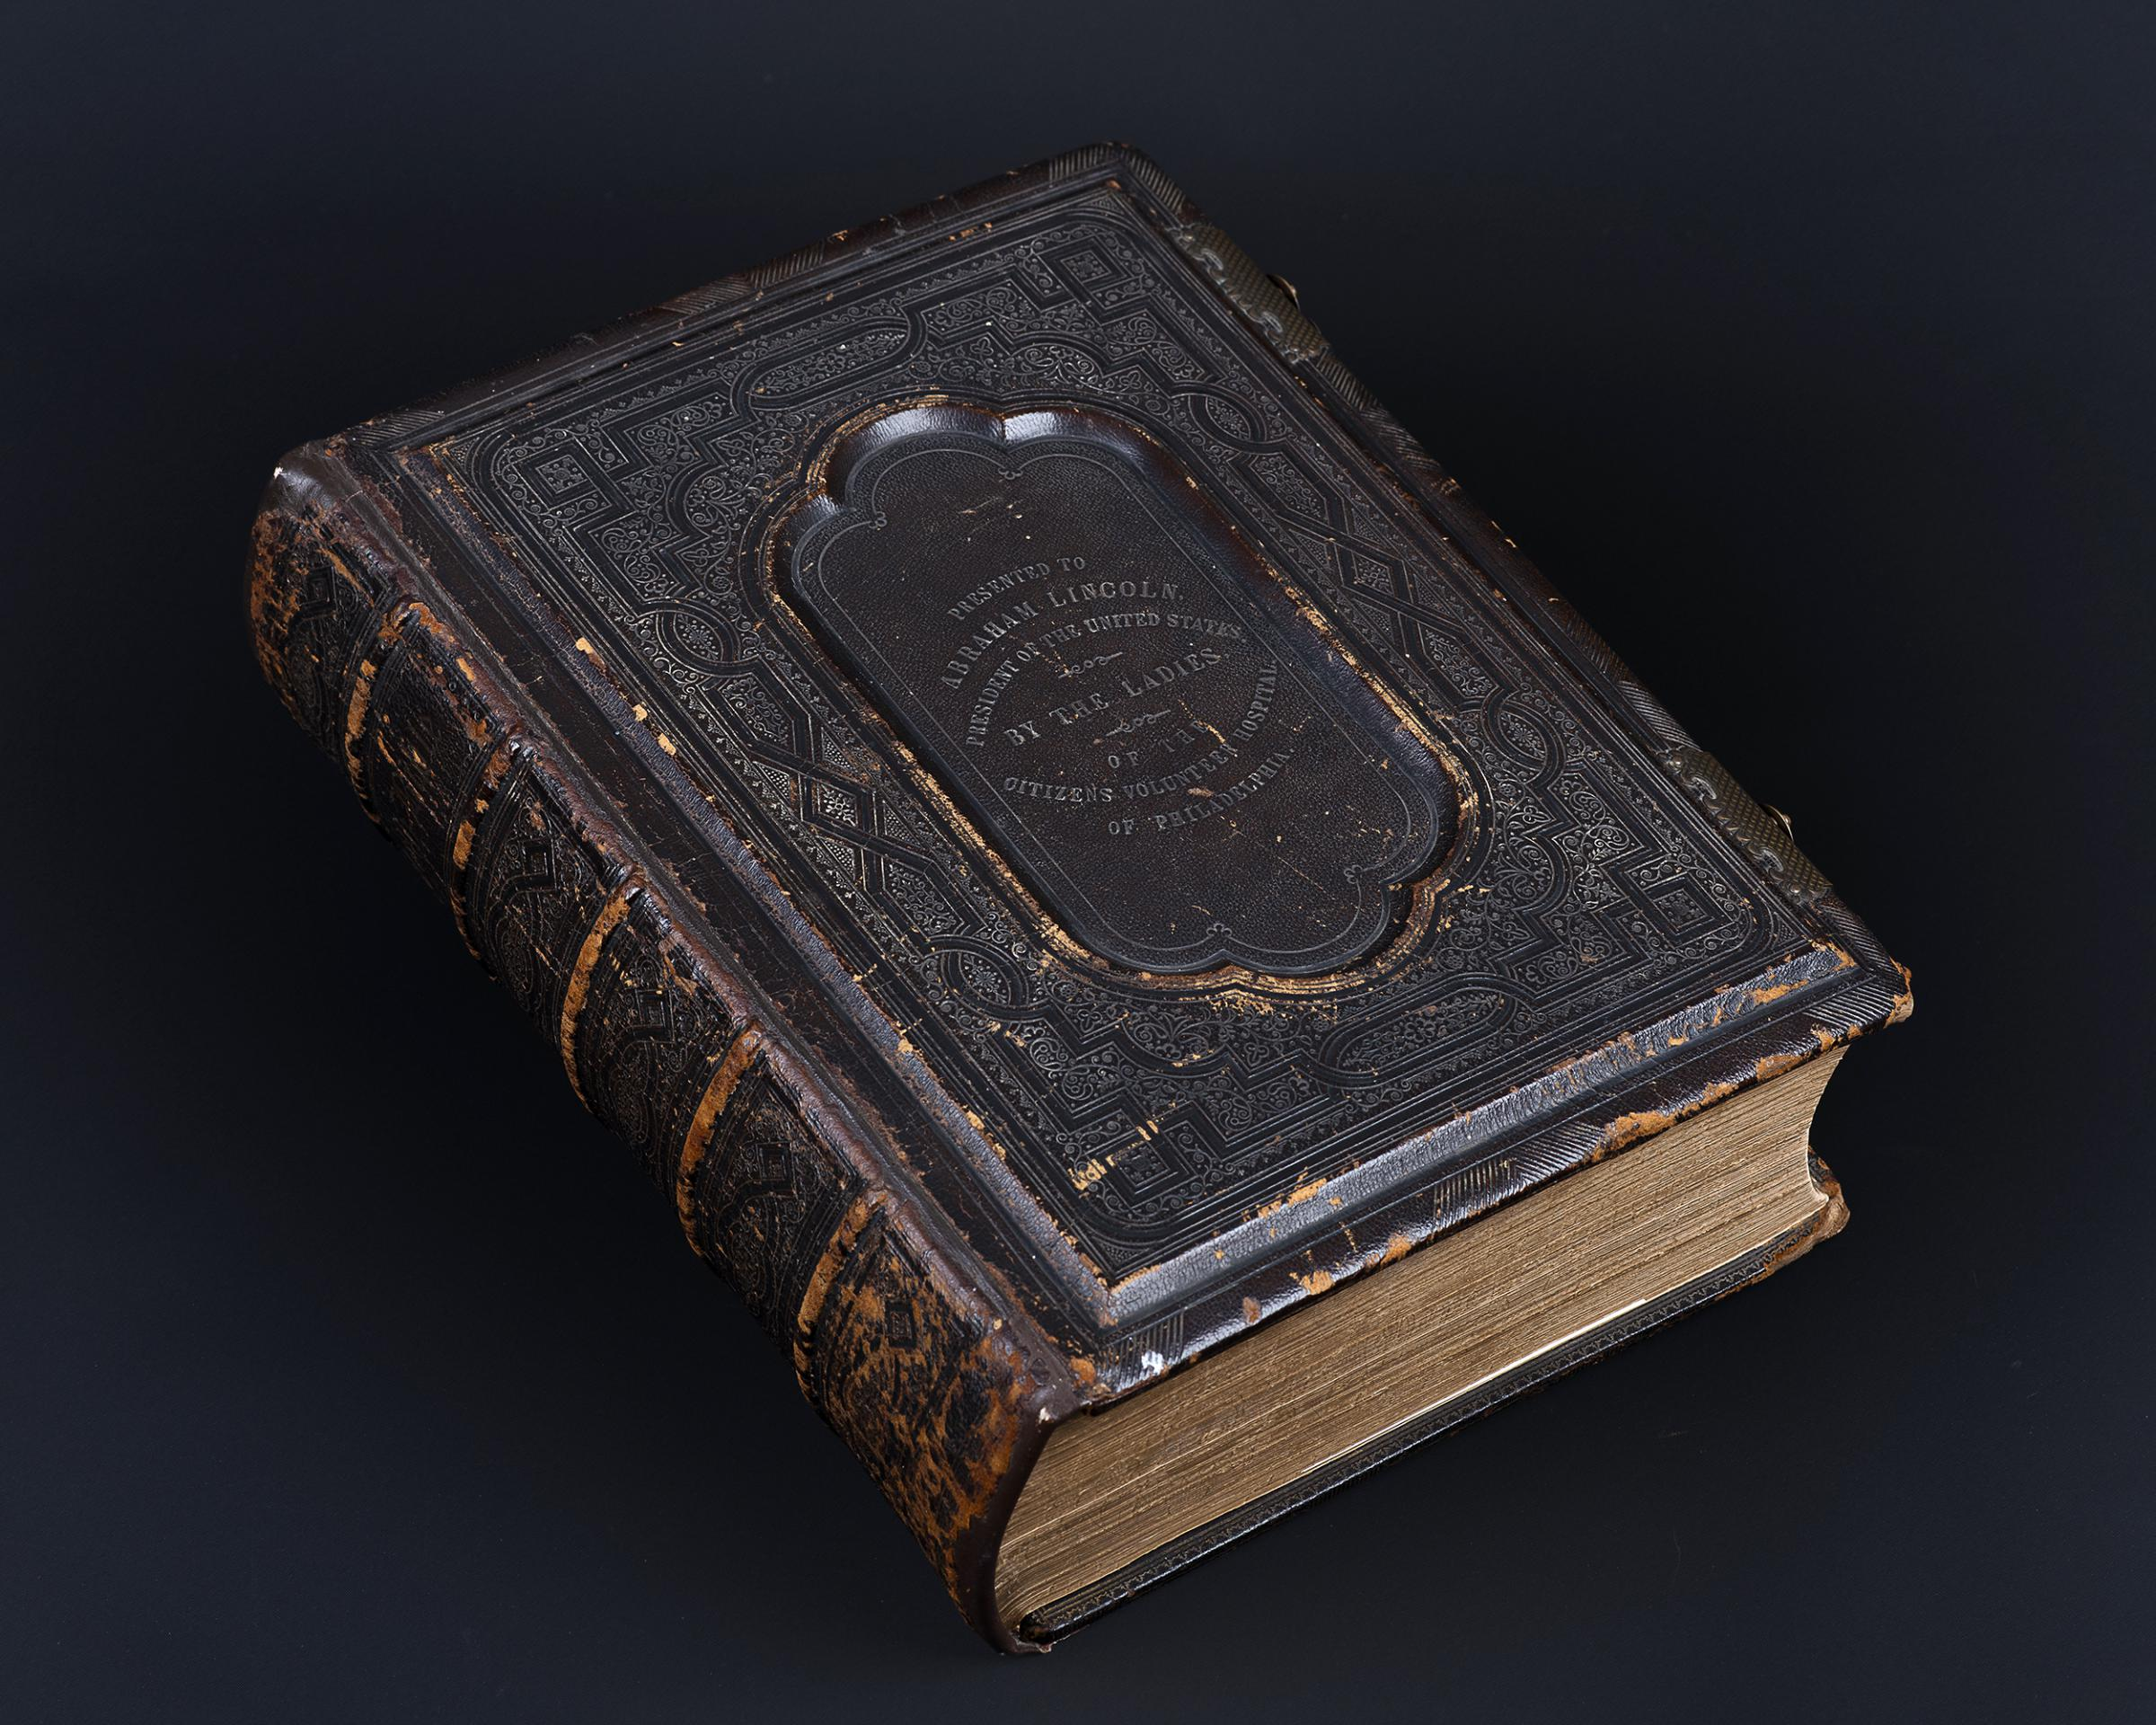 A New Lincoln Bible Unveiled To The Public For The First